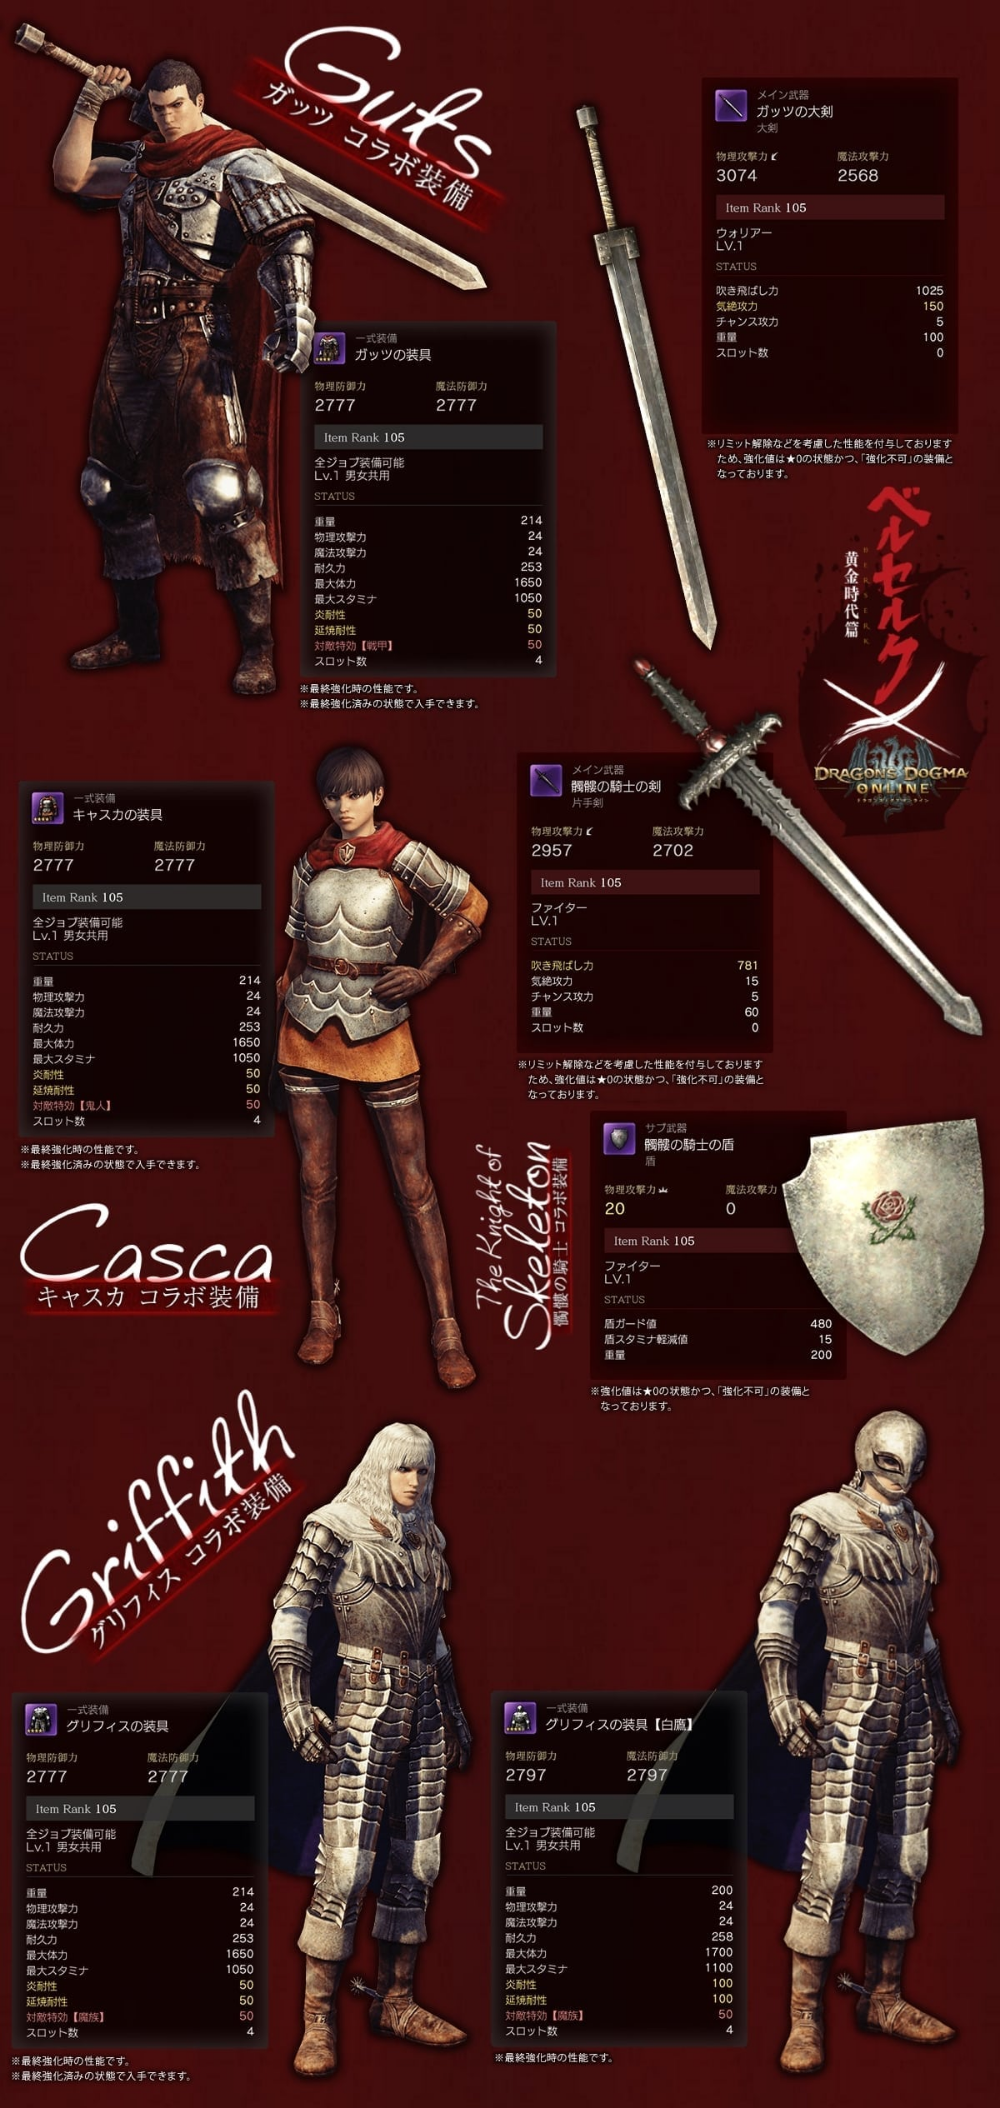 Dragon S Dogma Online New Crossover Event With Berserk The Golden Age Begins Mmo Culture Dragon S Dogma Berserk Golden Age Dark arisen, which includes all console and pc versions. golden age begins mmo culture